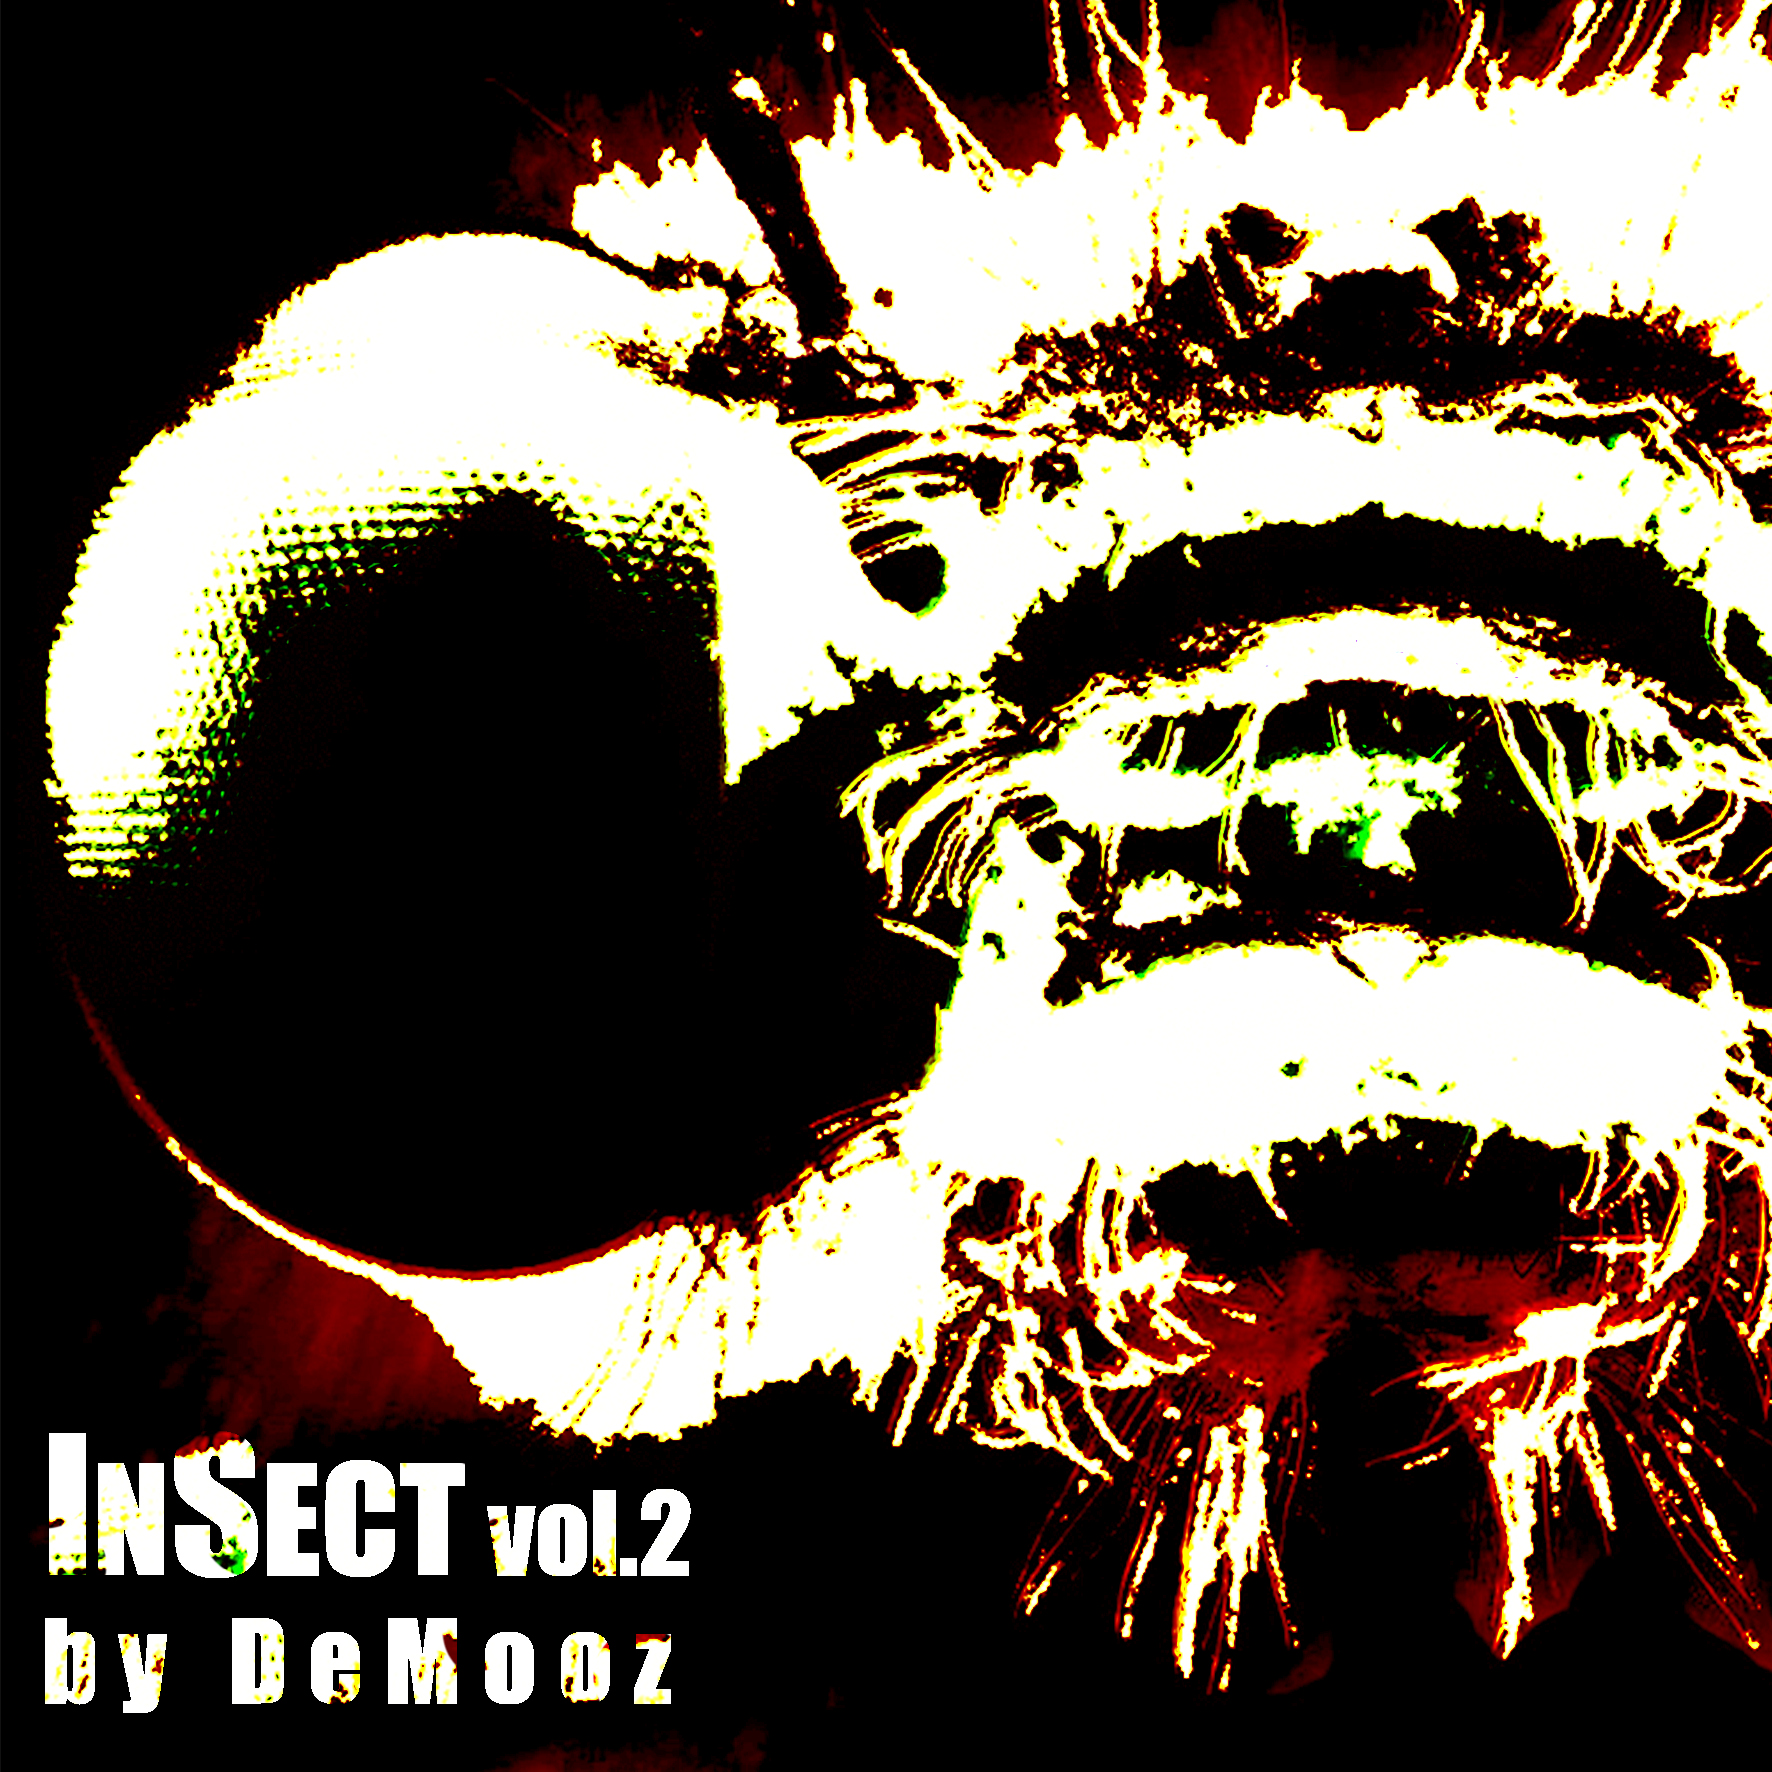 InSect vol.2